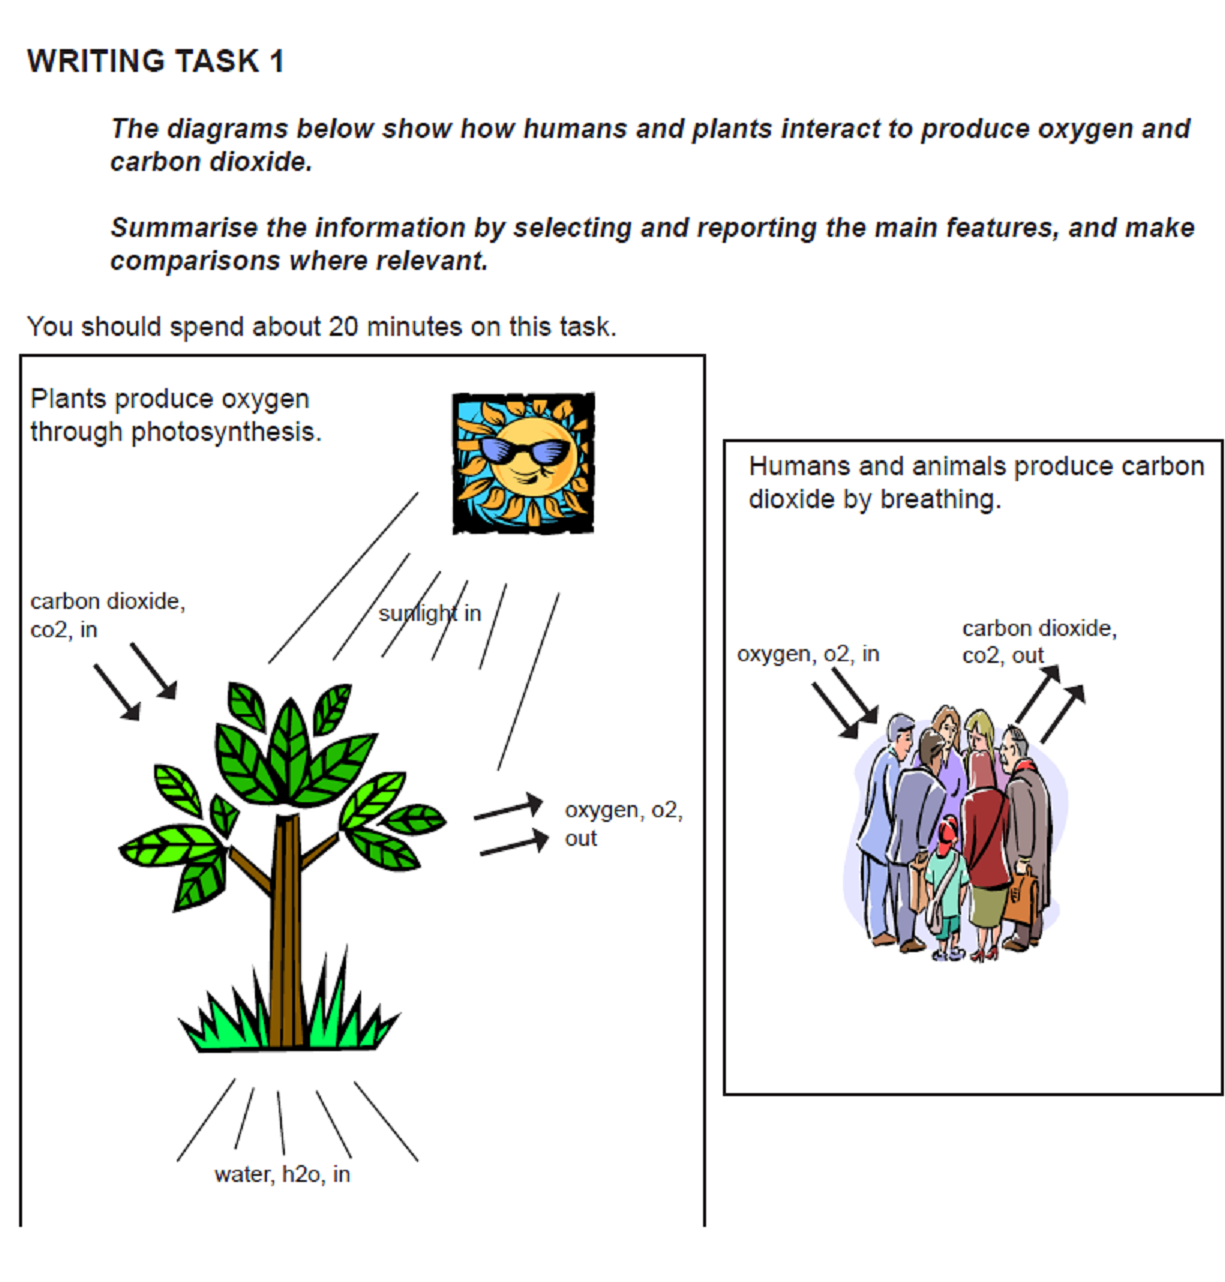 A journey to remember plant photosynthesis ielts task 1 the diagrams demonstrate how plant photosynthesis process is related to human breathing process as can be seen it is a mutual relationship that benefits ccuart Images